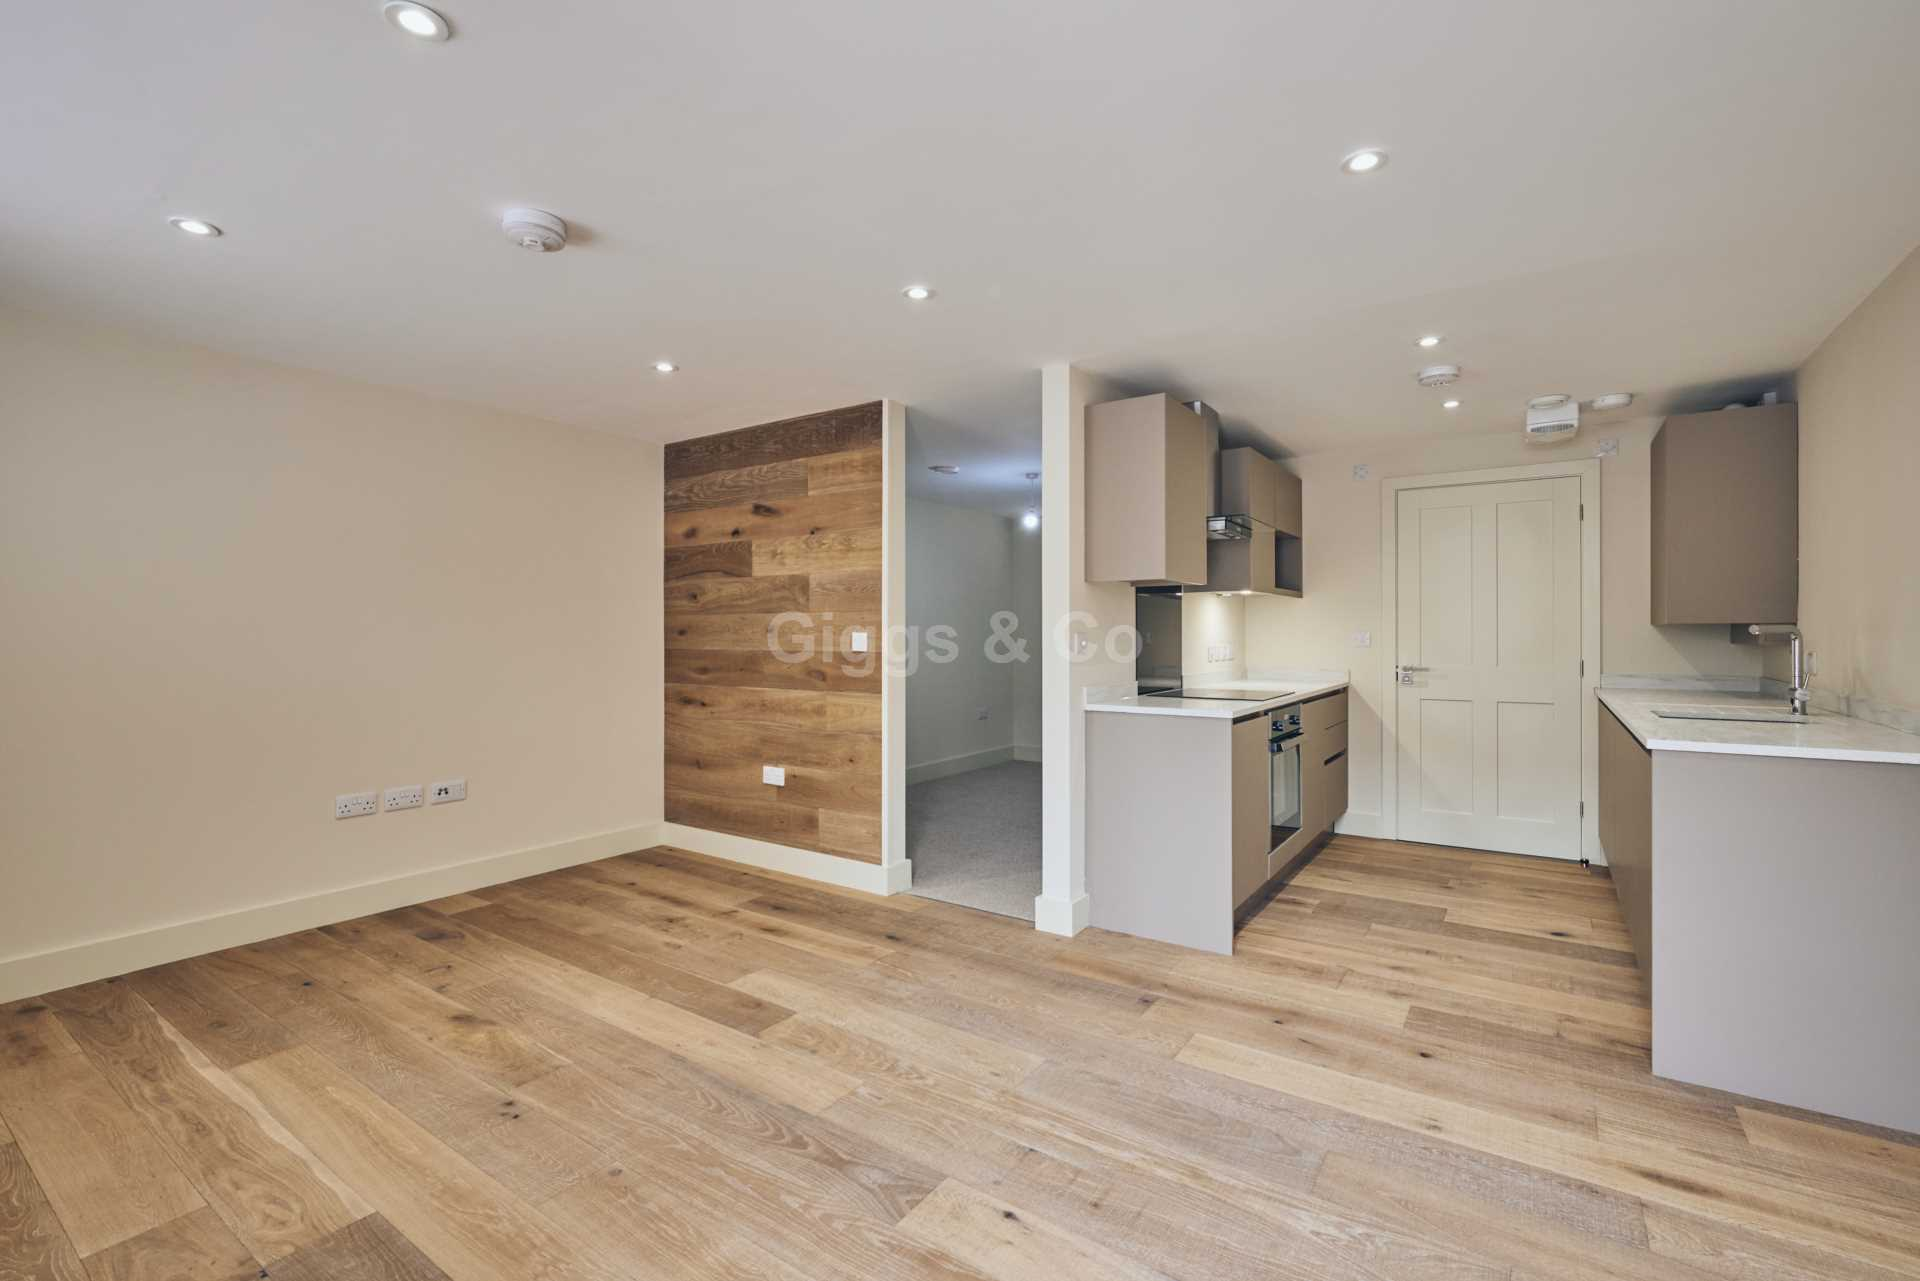 1 bed studio flat to rent in East Street, St.Ives  - Property Image 2